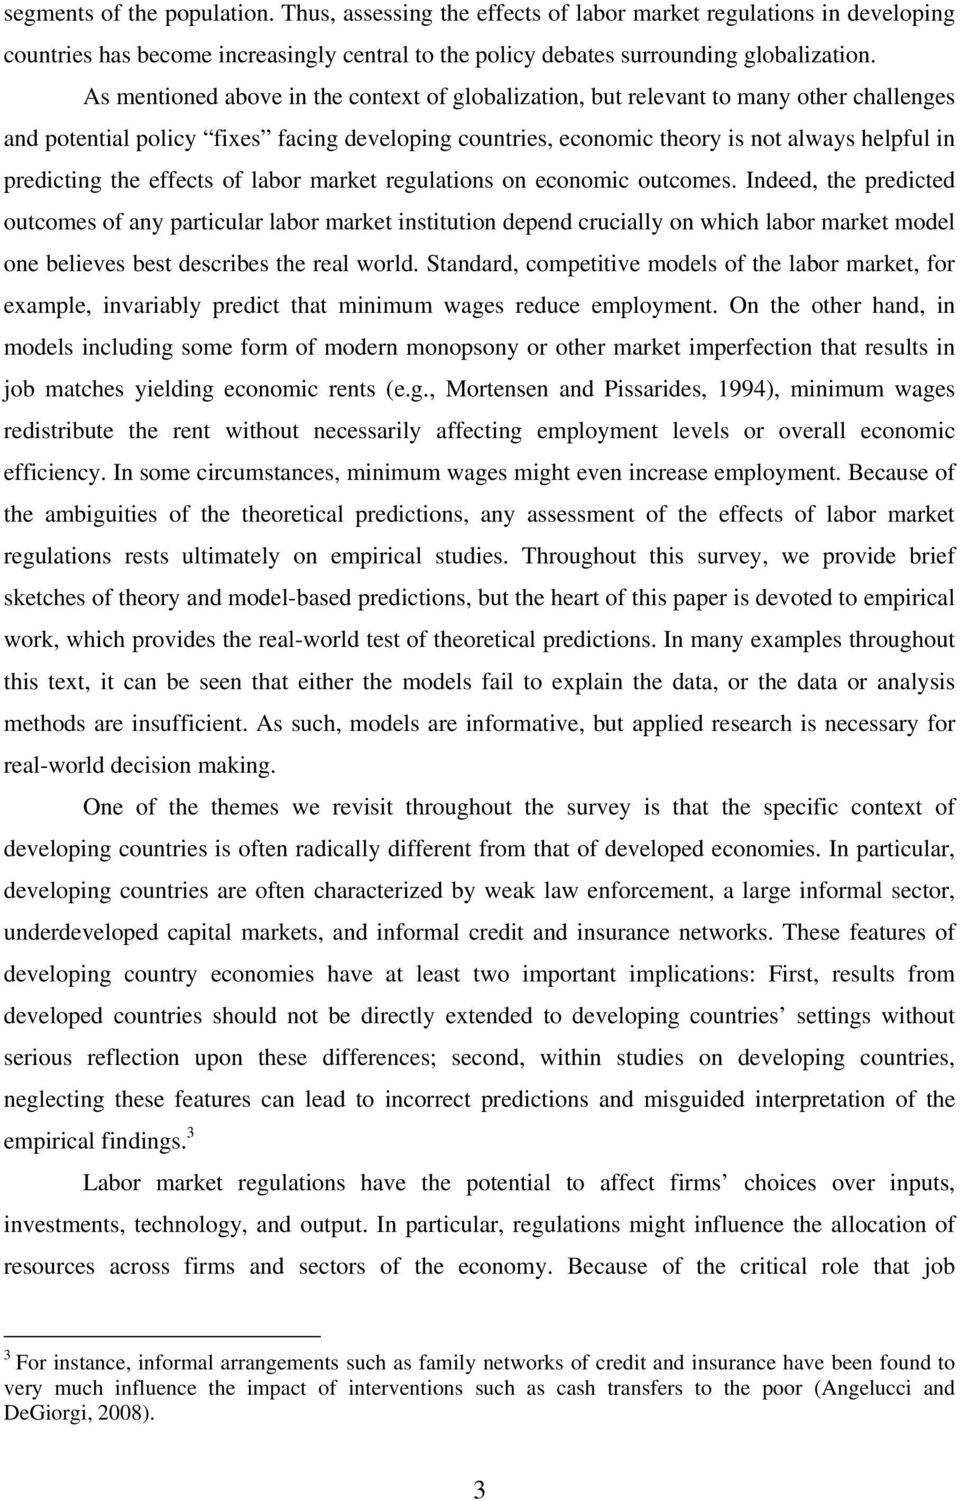 importance of informal sector in developing countries